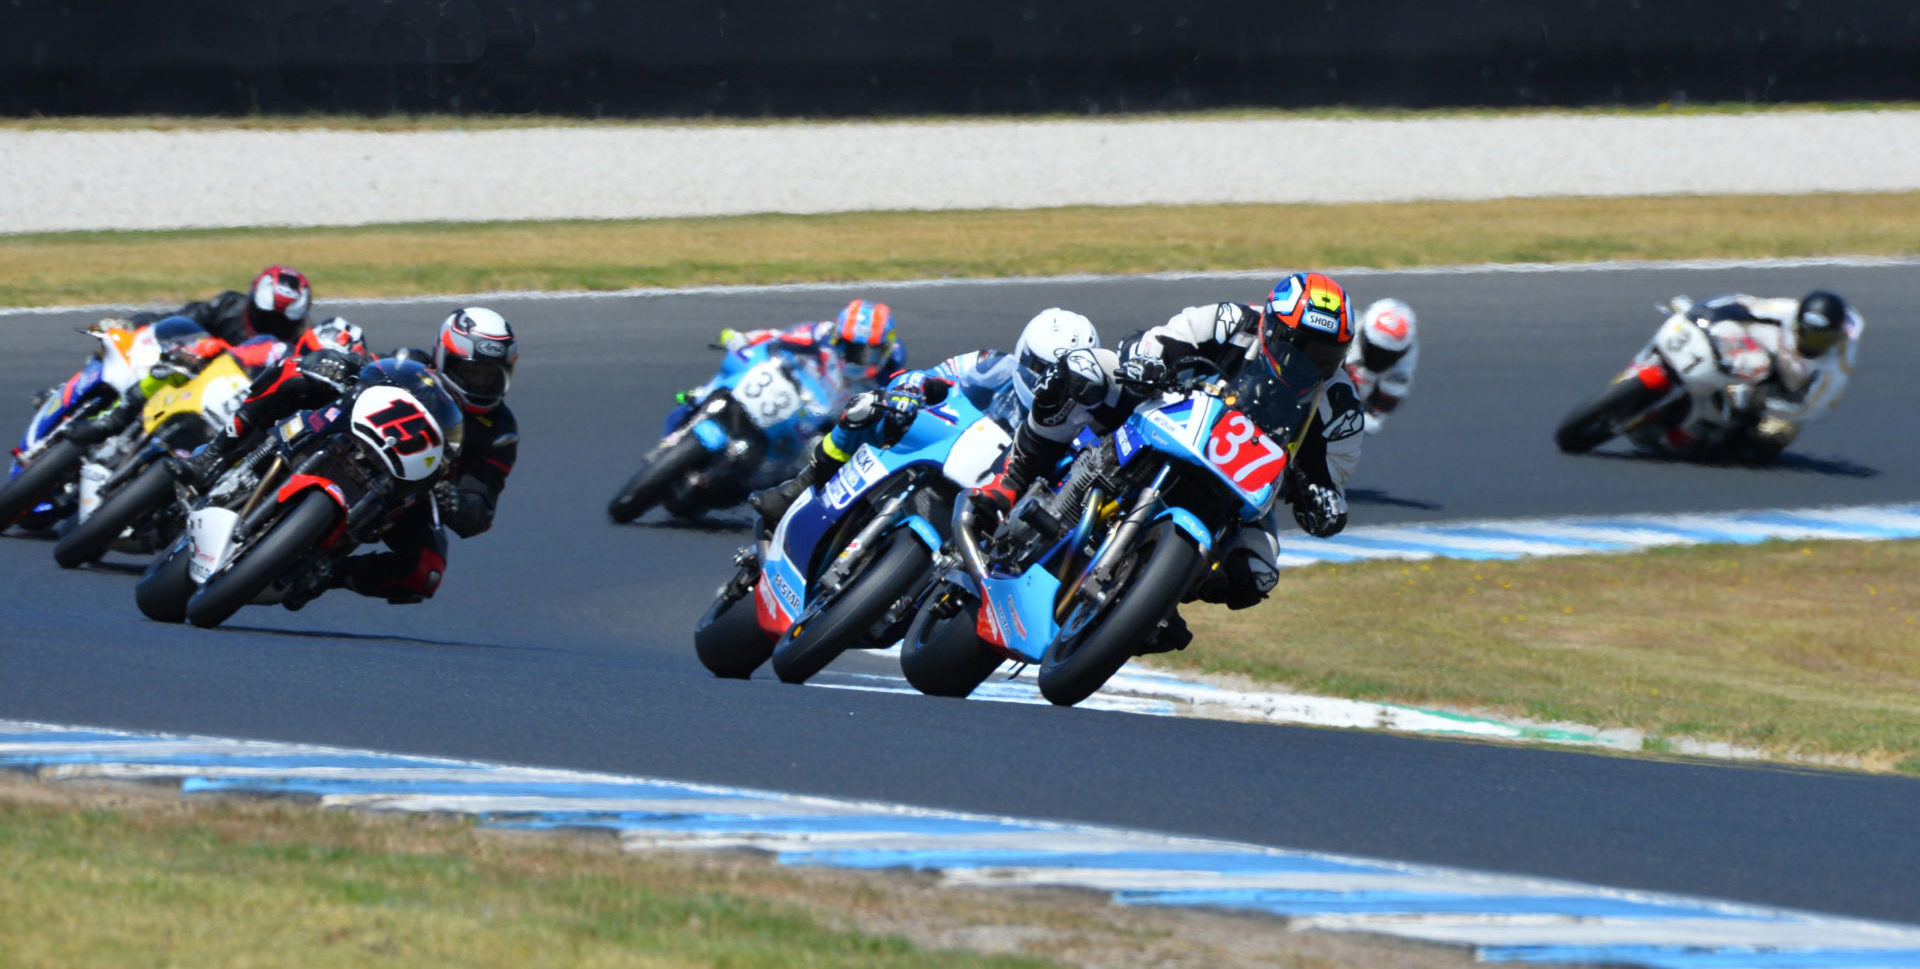 The International Island Classic vintage motorcycle racing event returns to Phillip Island Grand Prix Circuit this coming weekend. Photo by Russell Colvin, courtesy of Phillip Island Grand Prix Circuit.